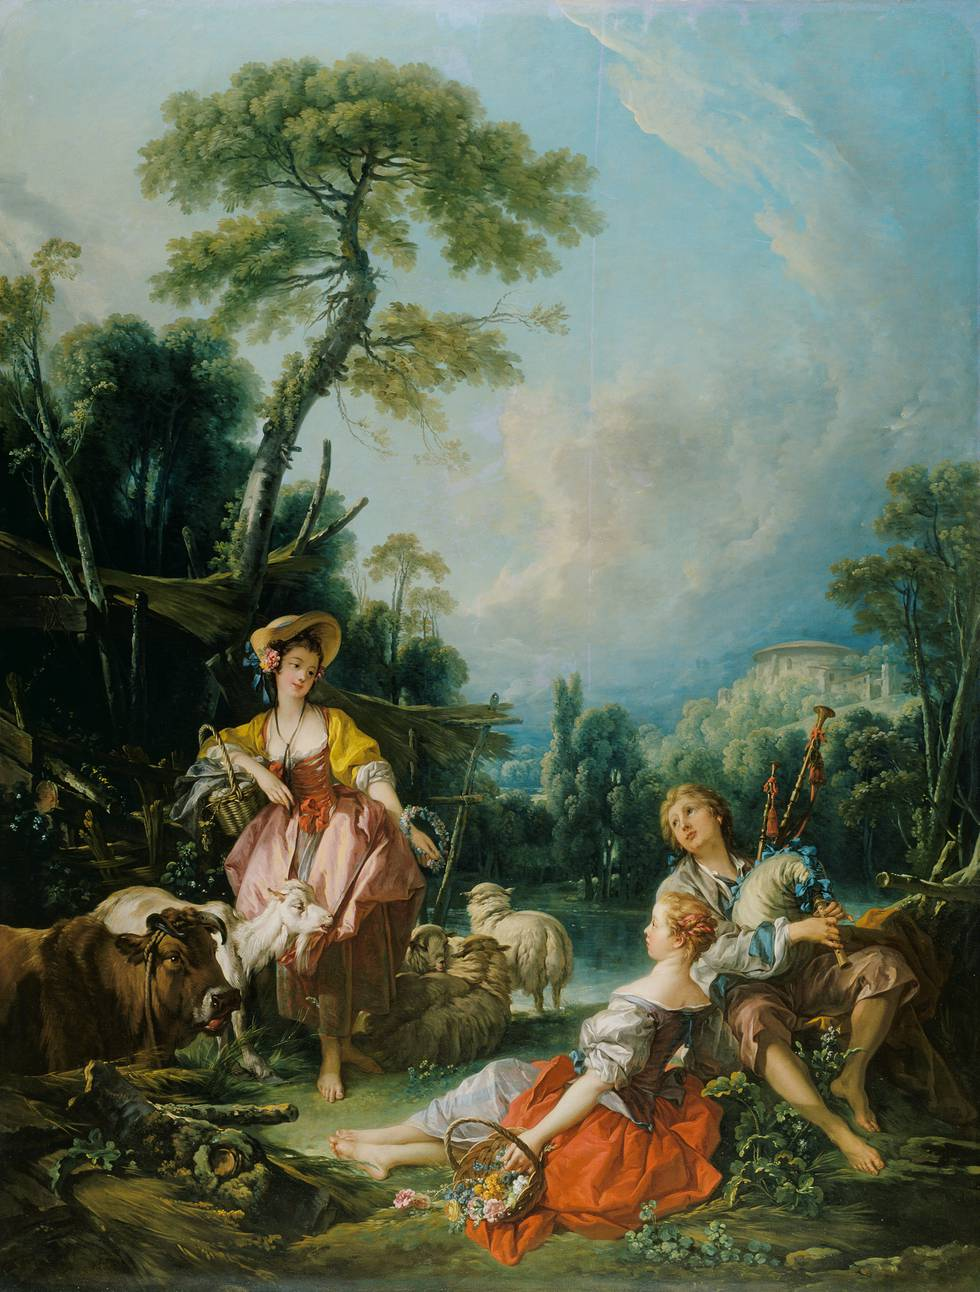 Two Shepherdess and one Shepard by river in rural setting